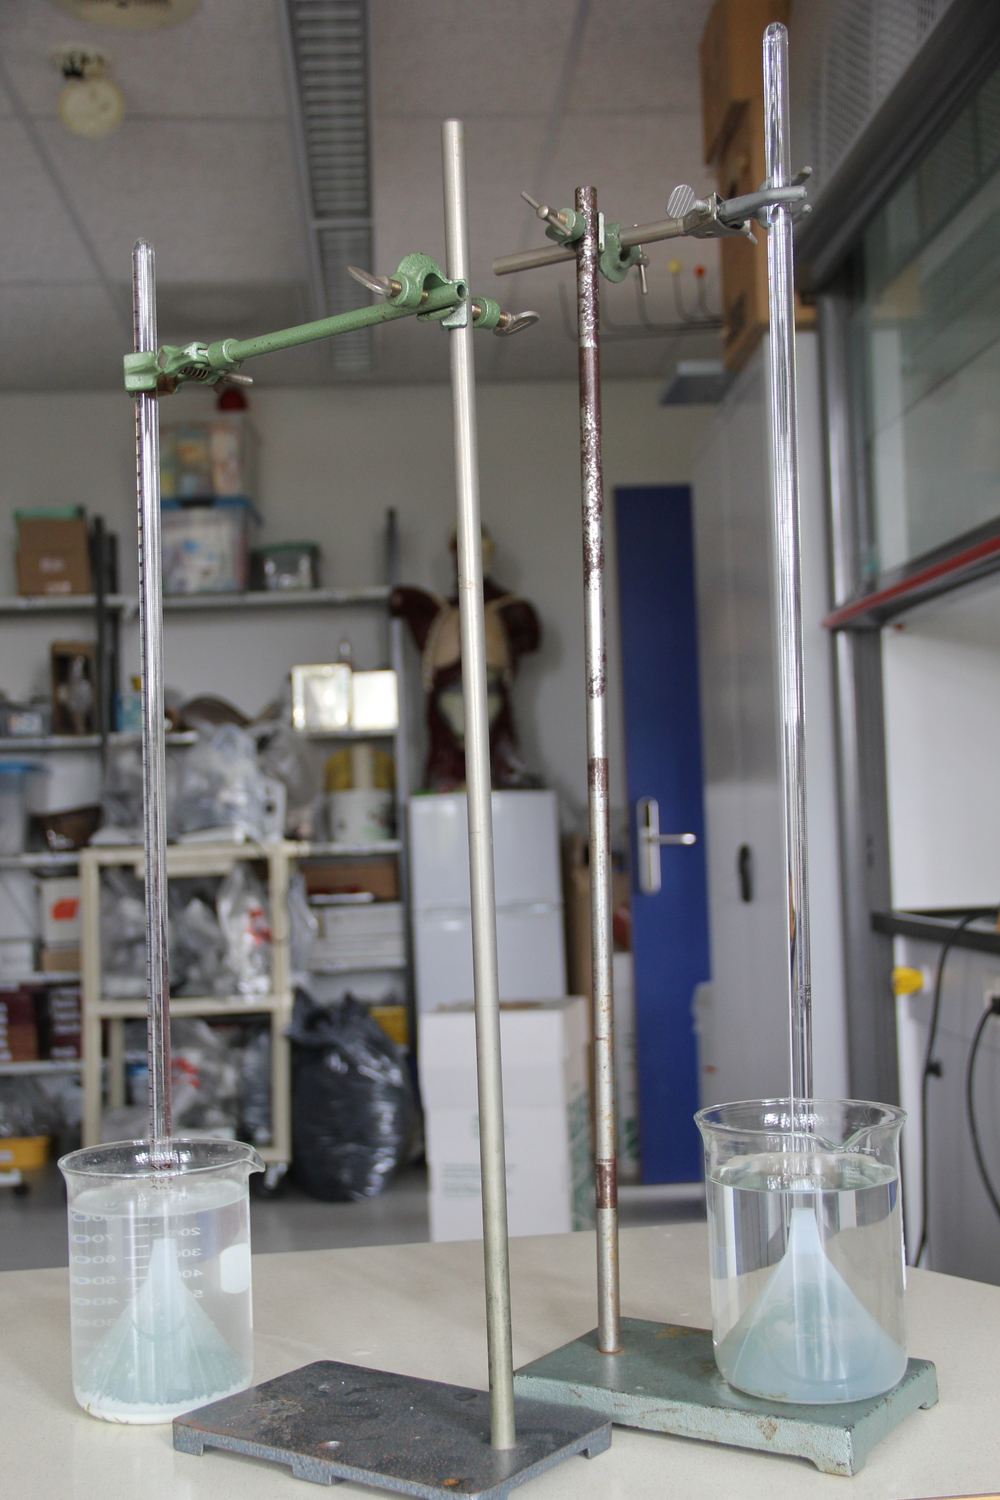 The illusive photosynthesis experiment. This student has a good start but has a lot to figure out.